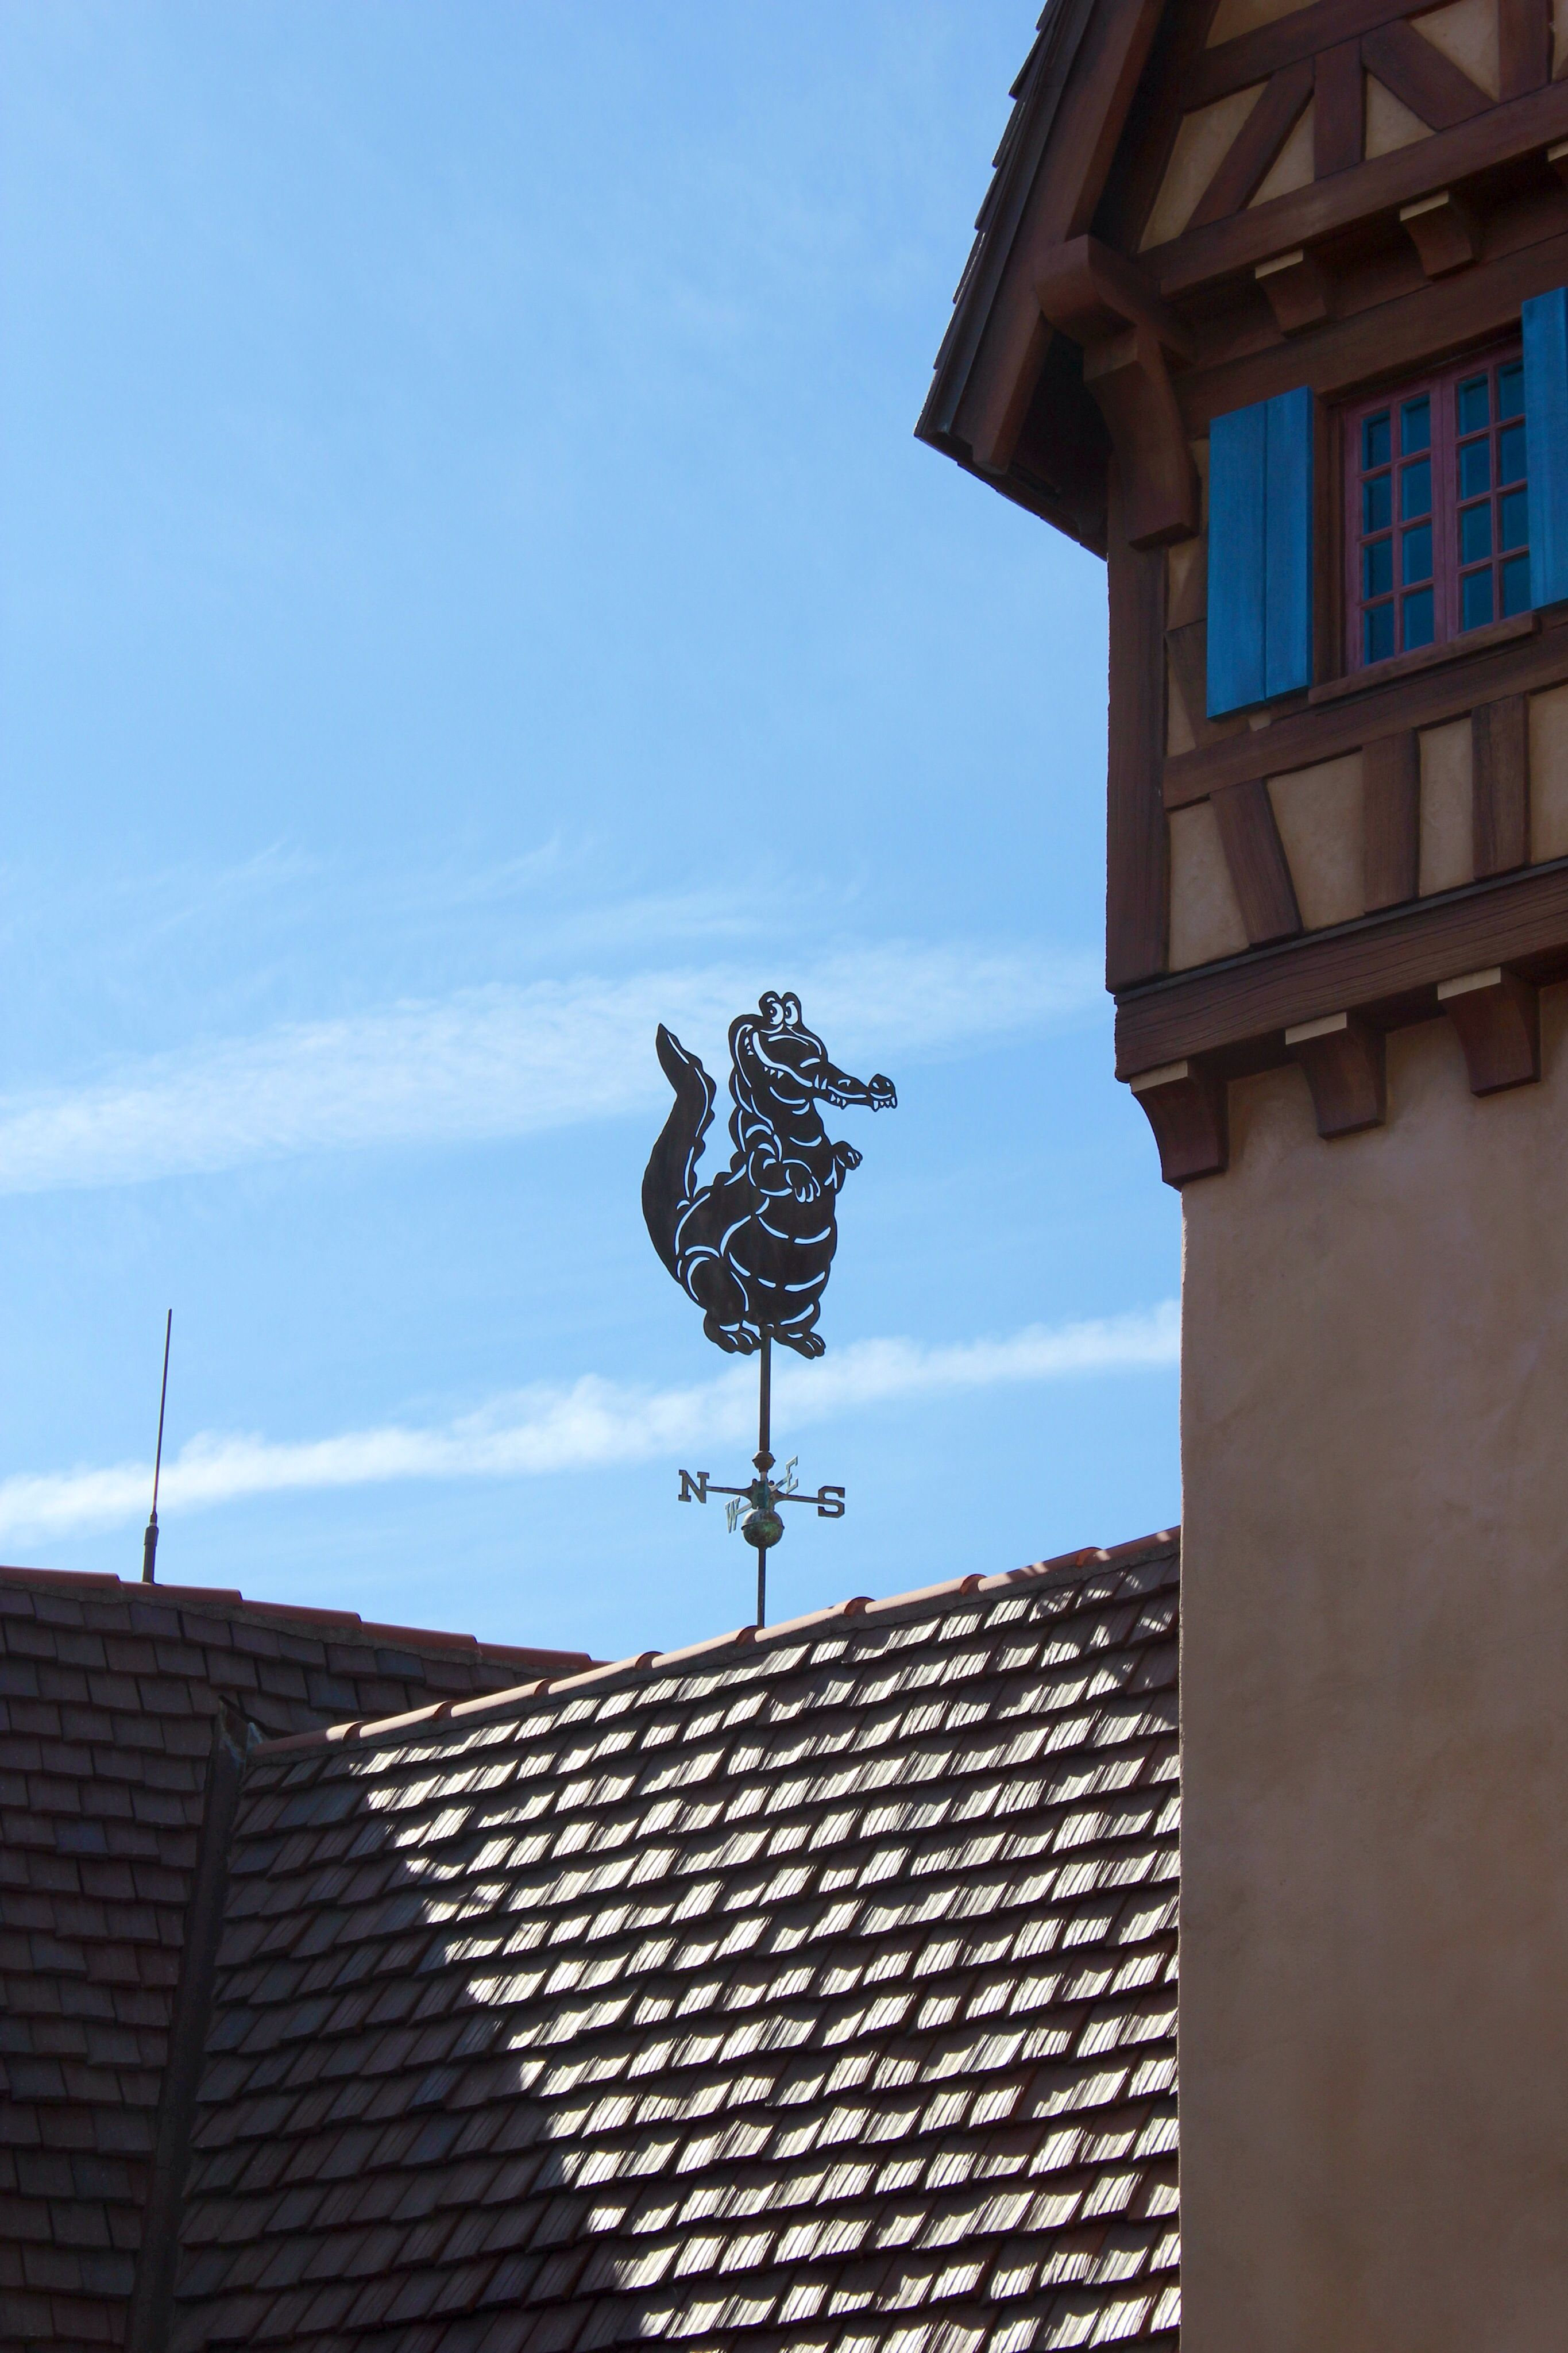 Tick-Tock Croc weather vane <---- this would be hilarious on top of my family's barn!!!  XD